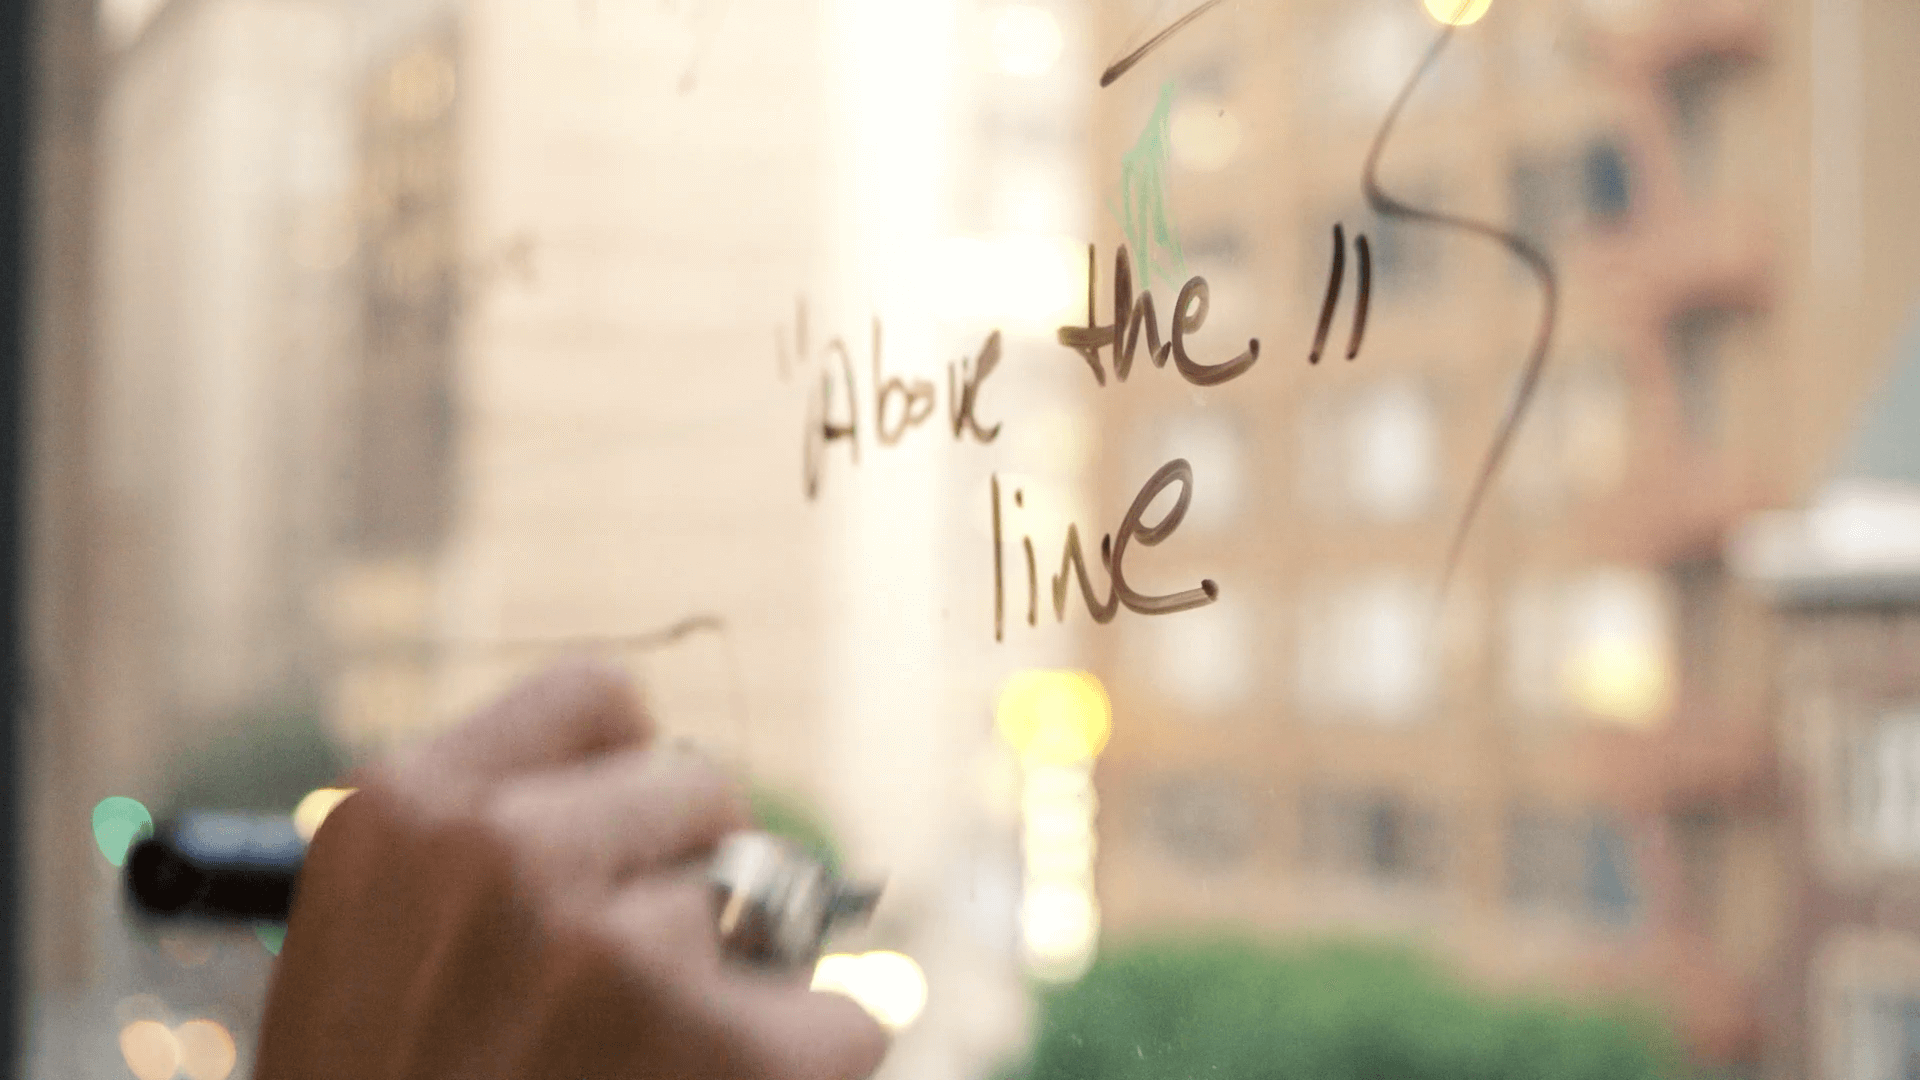 person writing with marker on a window, reads